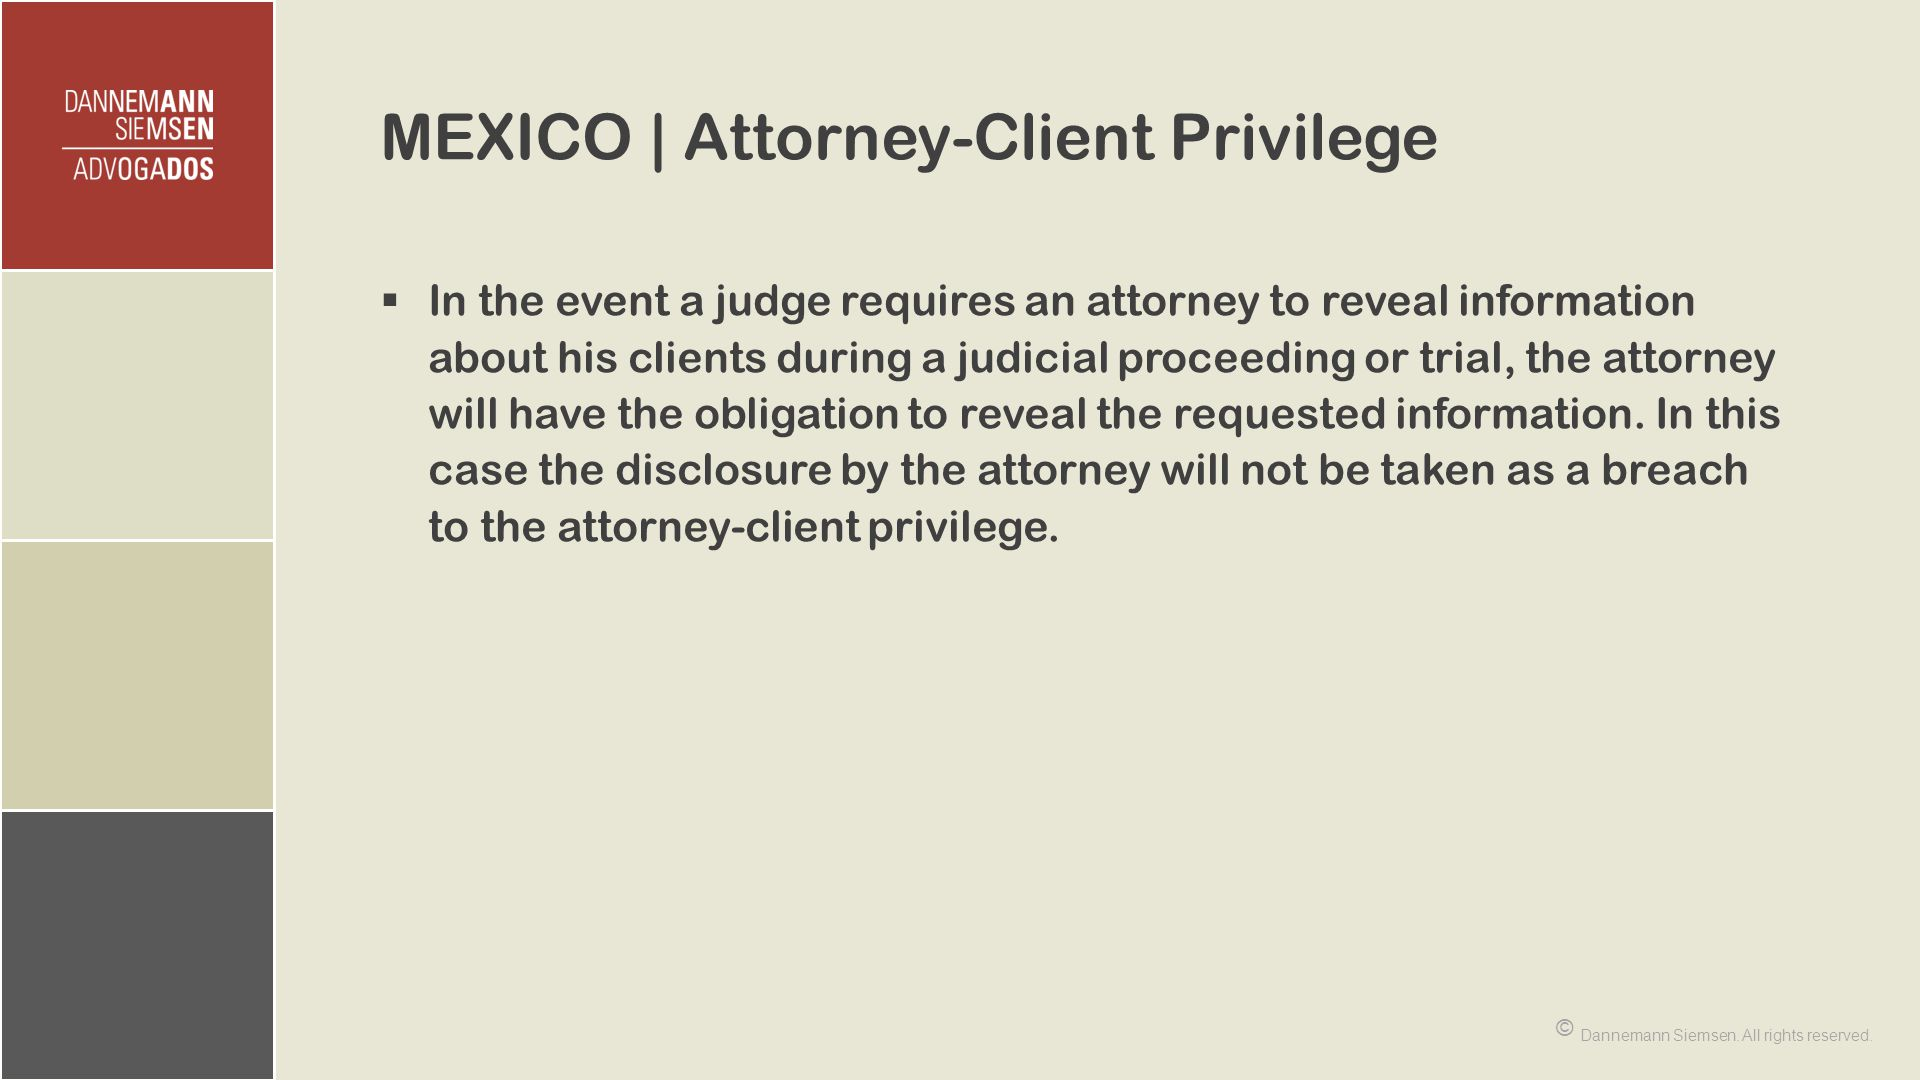 MEXICO | Attorney-Client Privilege  In the event a judge requires an attorney to reveal information about his clients during a judicial proceeding or trial, the attorney will have the obligation to reveal the requested information.